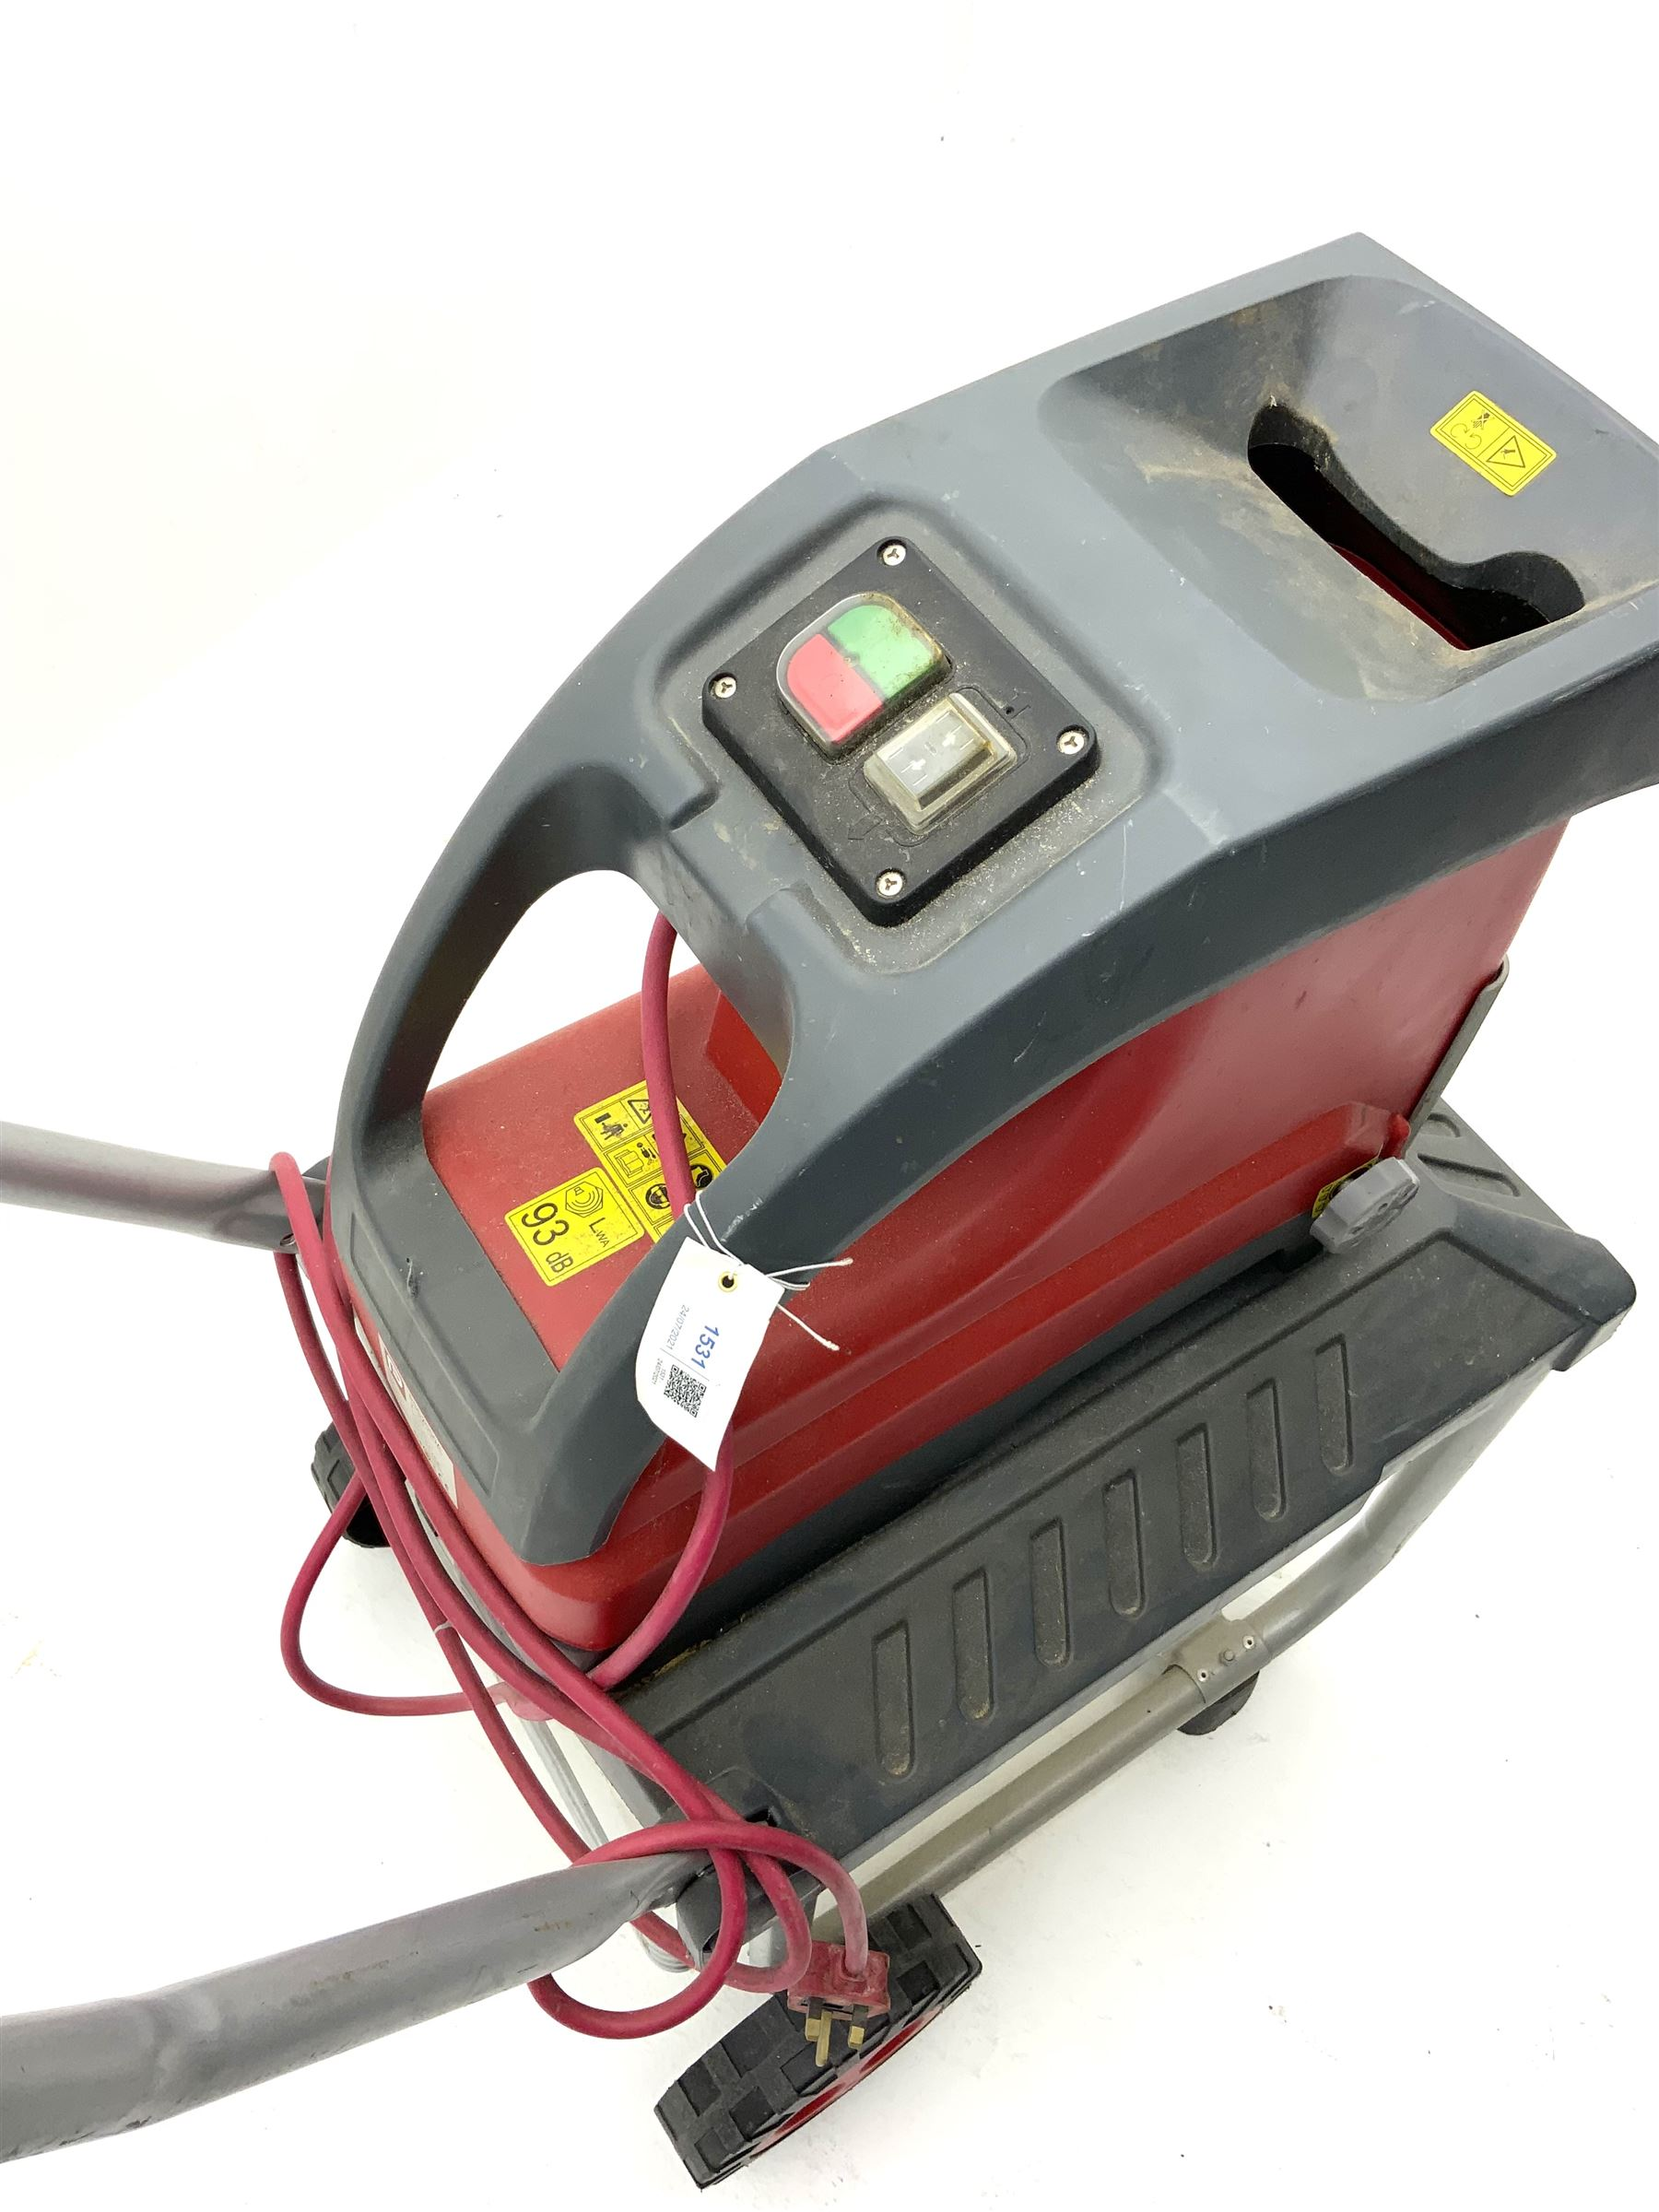 Performance Power Quiet Shredder PSS2500A - Image 2 of 2